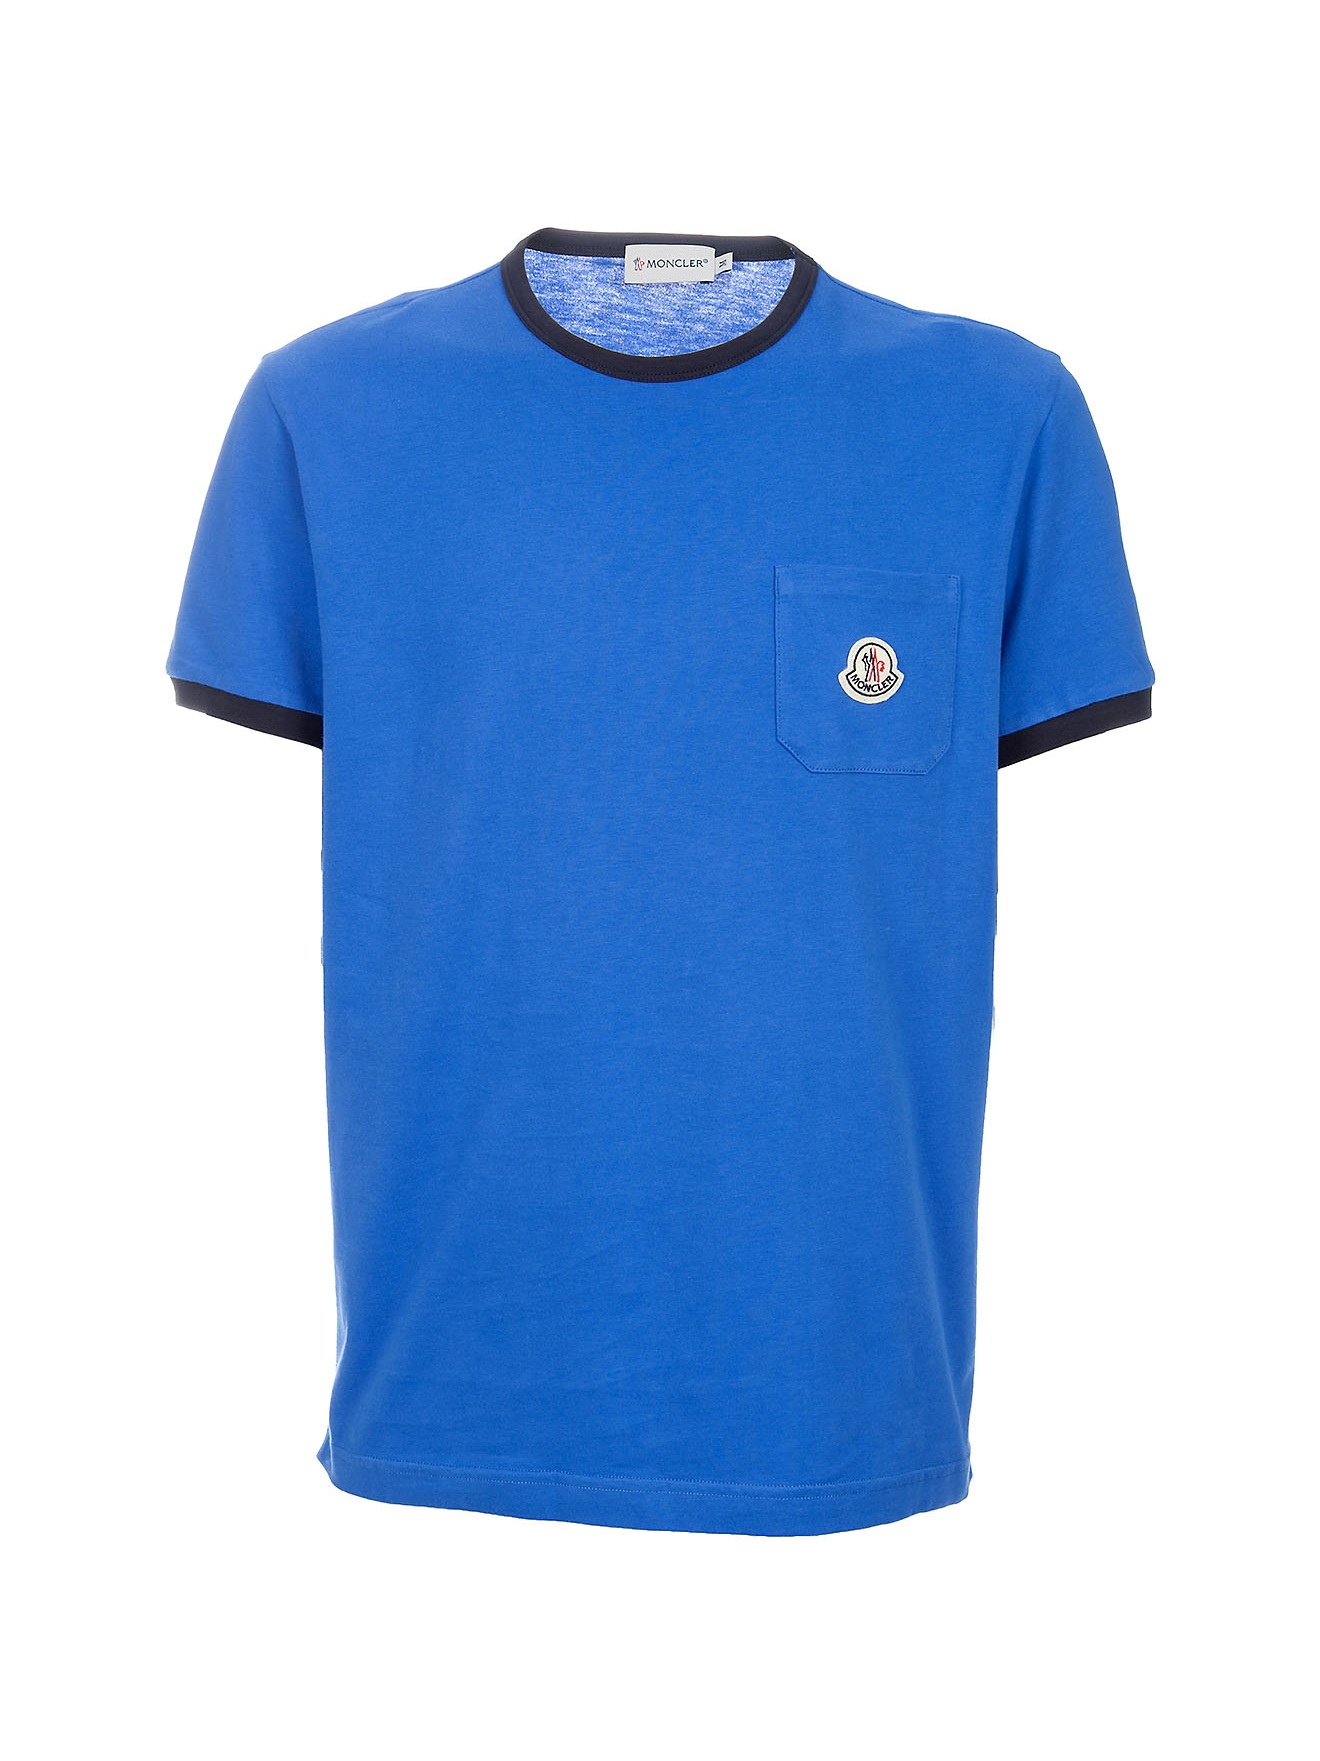 moncler short sleeved t shirt in blue for men lyst. Black Bedroom Furniture Sets. Home Design Ideas